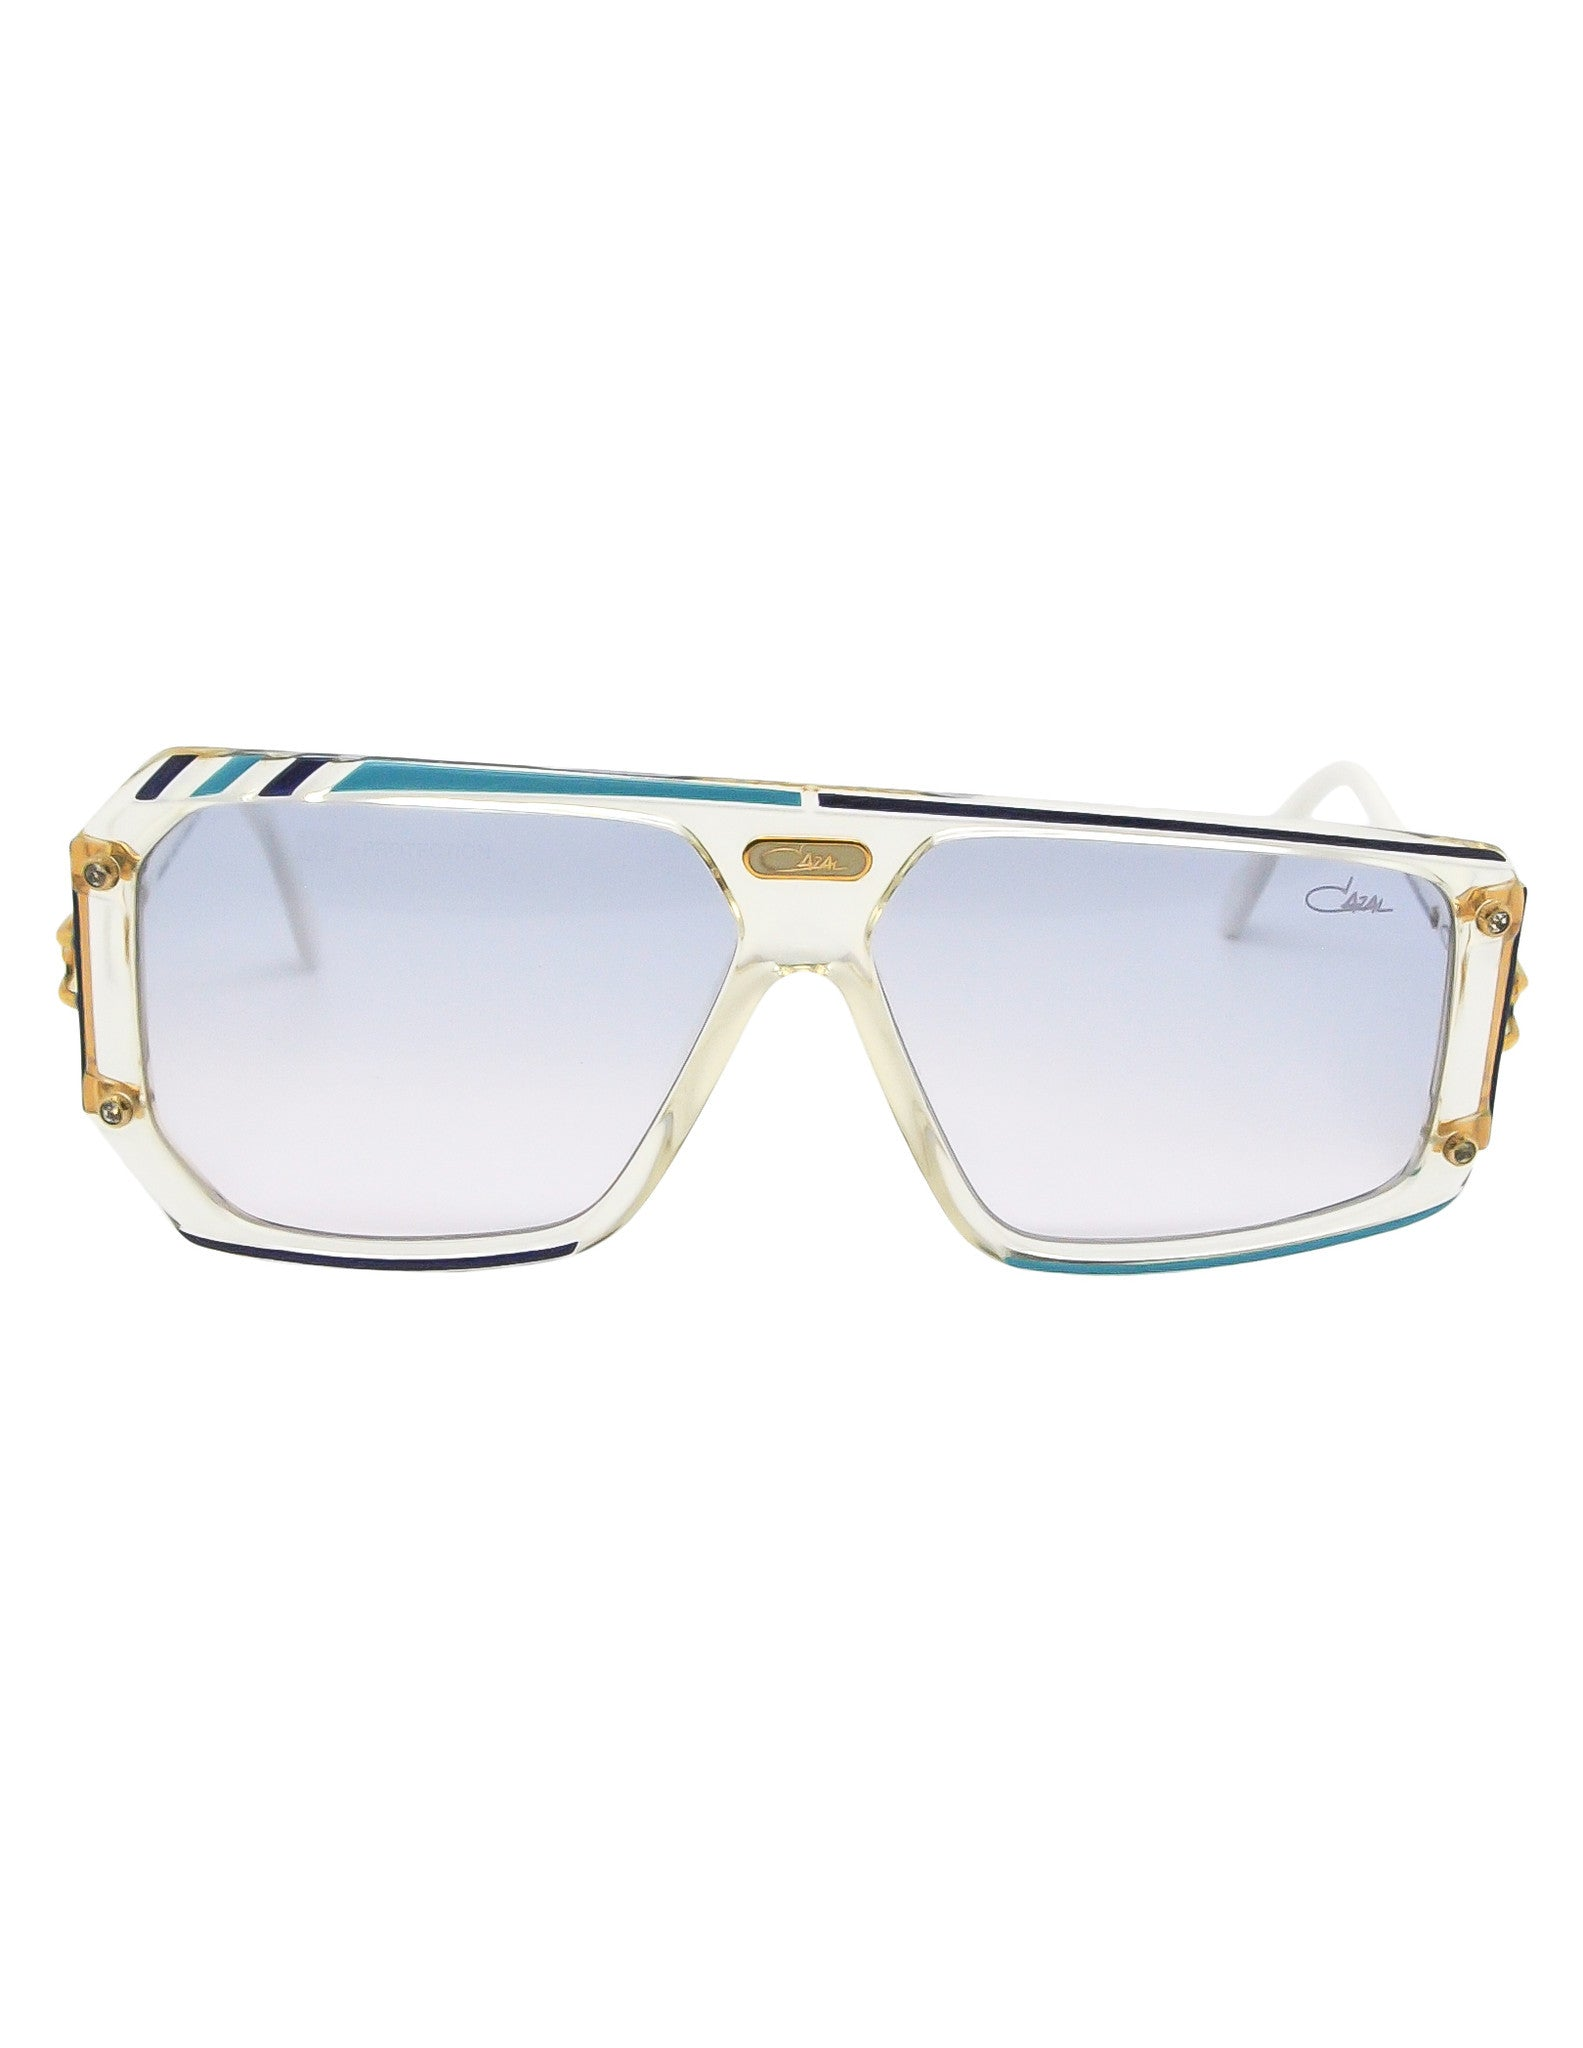 Cazal Vintage Asymmetrical Navy and Aqua Blue Sunglasses 867 649 - Amarcord Vintage Fashion  - 1